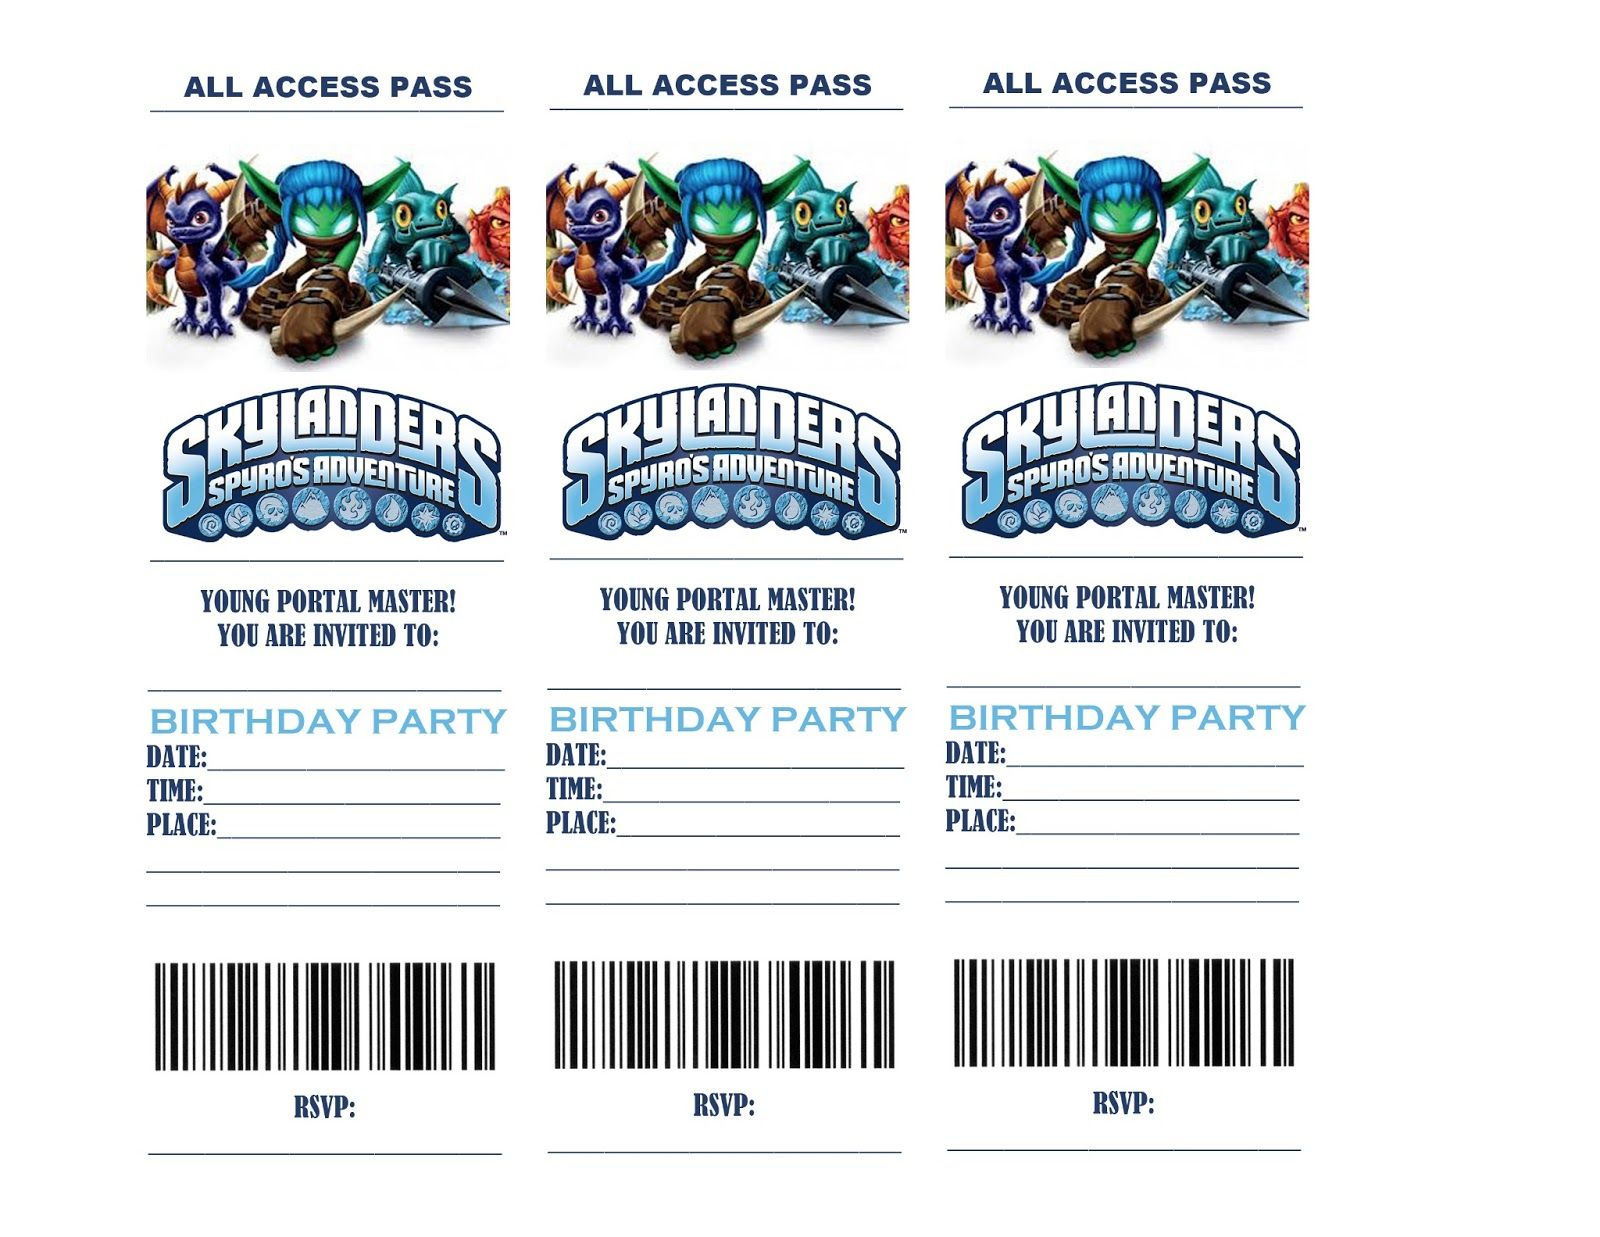 Pincrafty Annabelle On Skylanders Printables | Pinterest - Free Printable Skylander Invitations